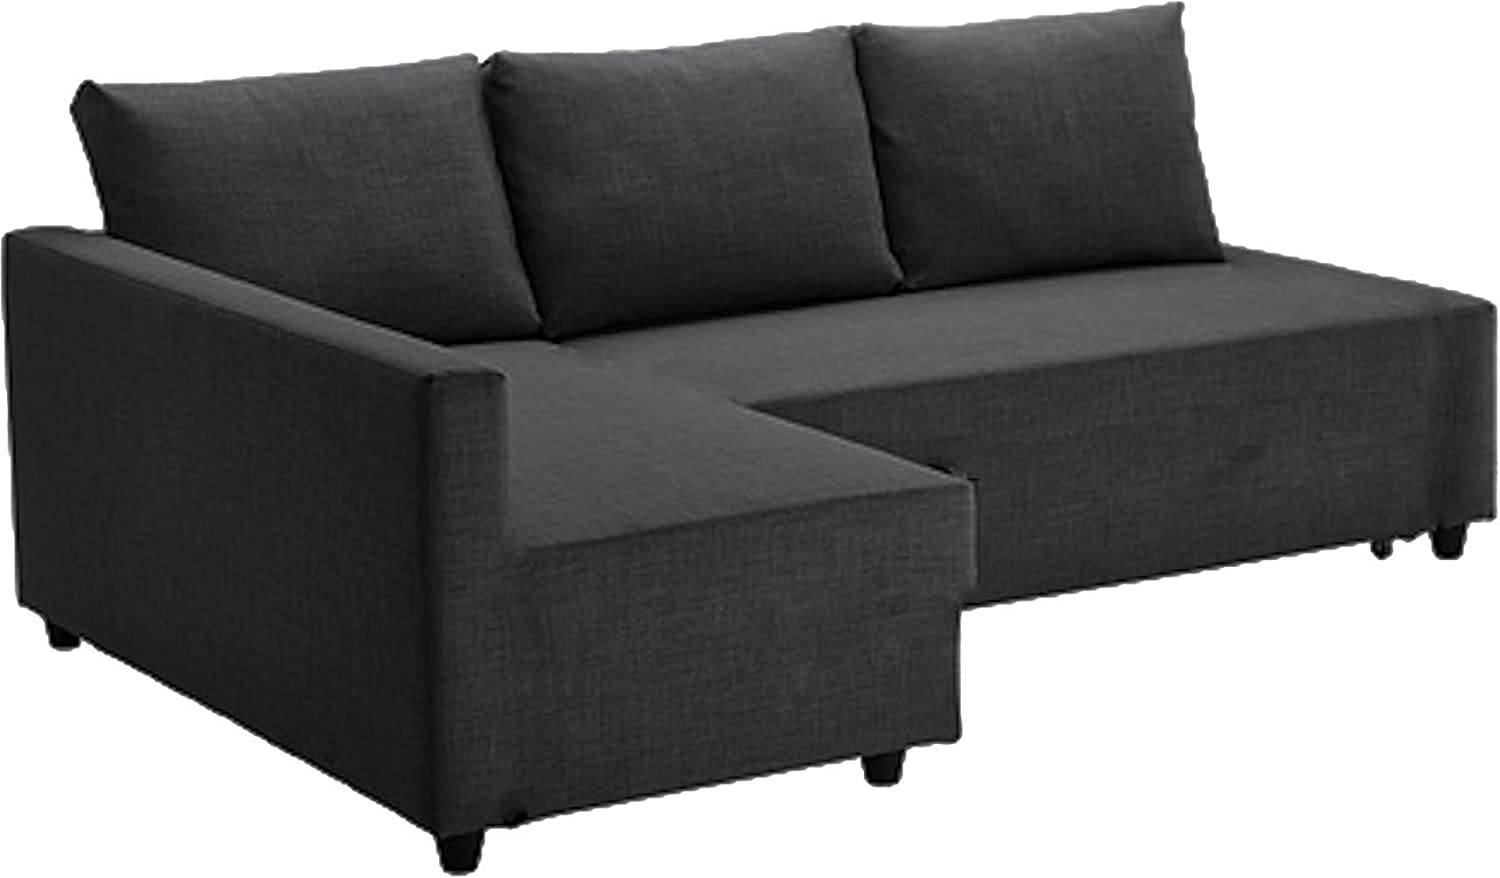 Genial The Dark Gray Friheten Thick Cotton Sofa Cover Replacement Is Custom Made  For IKEA Friheten Sofa Bed, Or Corner, Or Sectional Slipcover. Sofa Cover  Only!